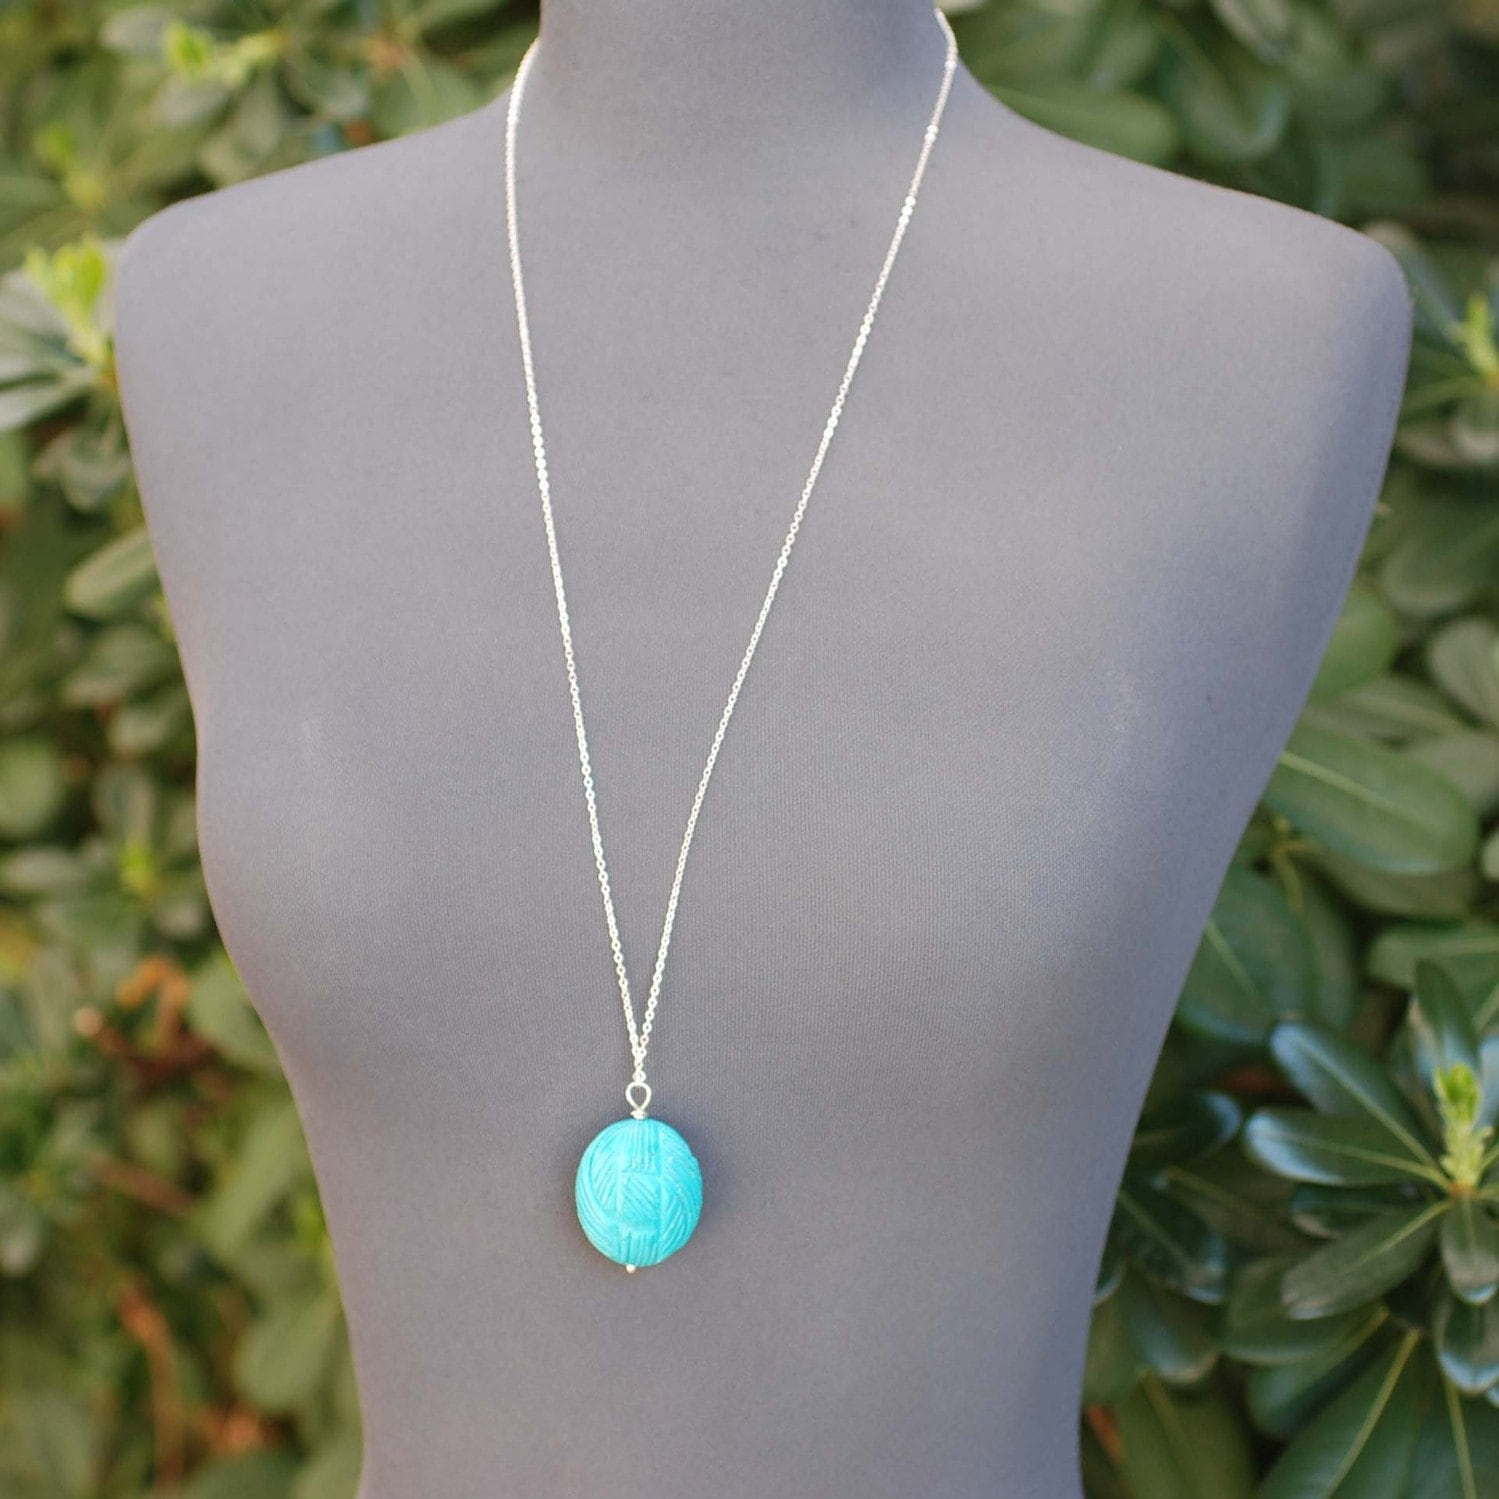 Long Turquoise Necklace Pendant Necklace Sterling Silver